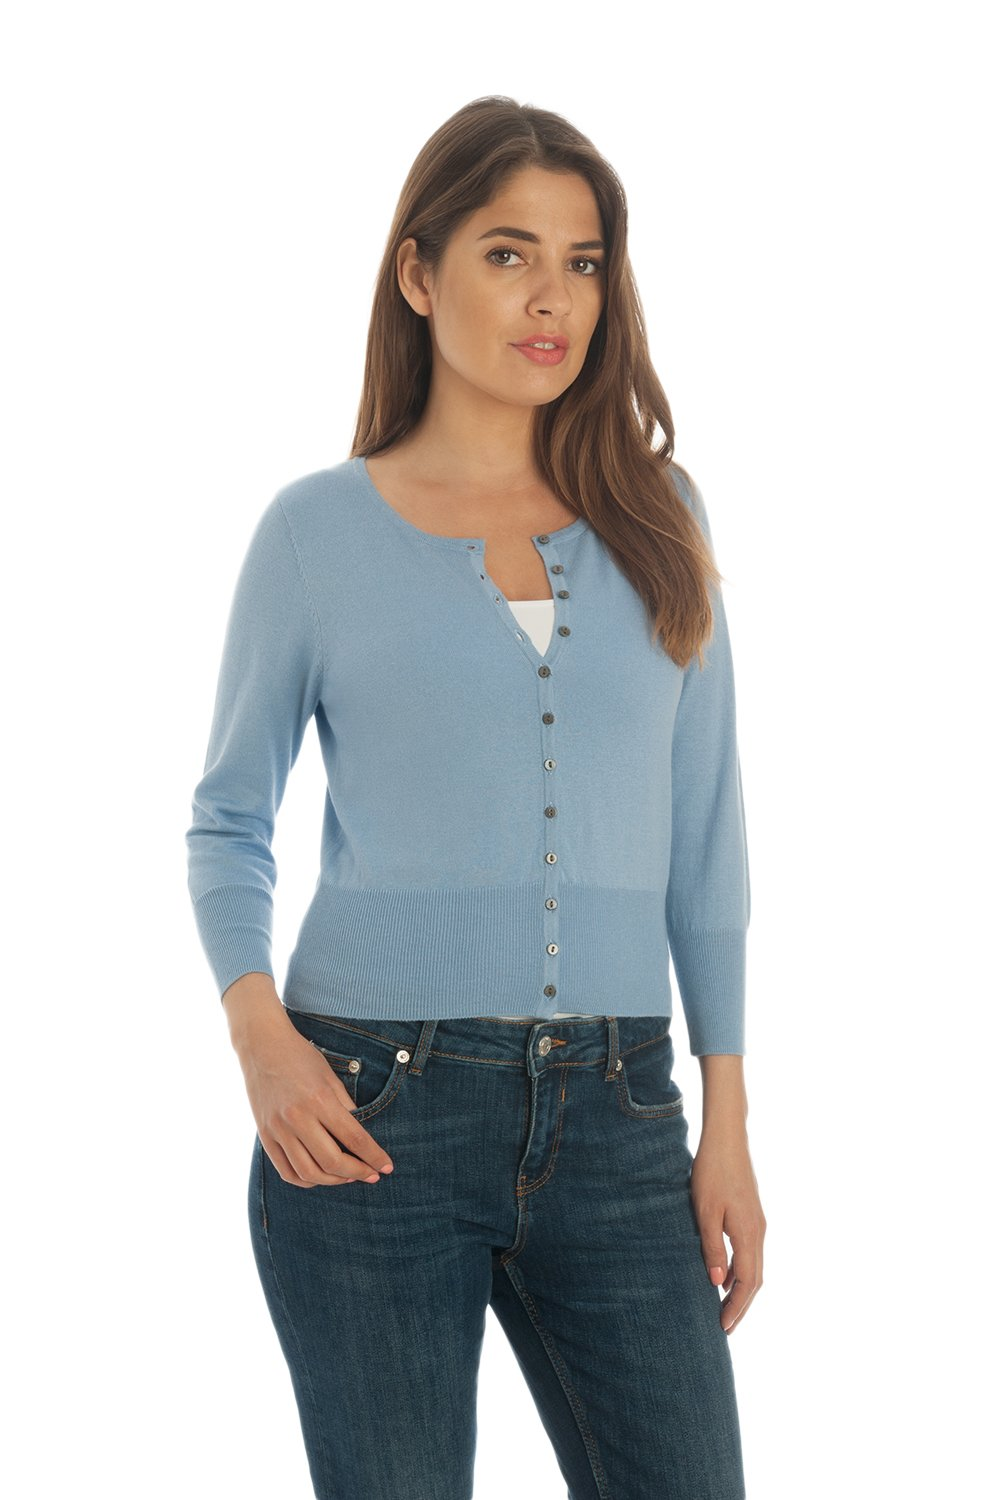 Adorawool - Cardigan Sweater for Women - Luxury Silk & Cotton - Button Down - Cropped Crew - 3/4 Sleeve - Maya Blue - Size Large by Adorawool (Image #3)